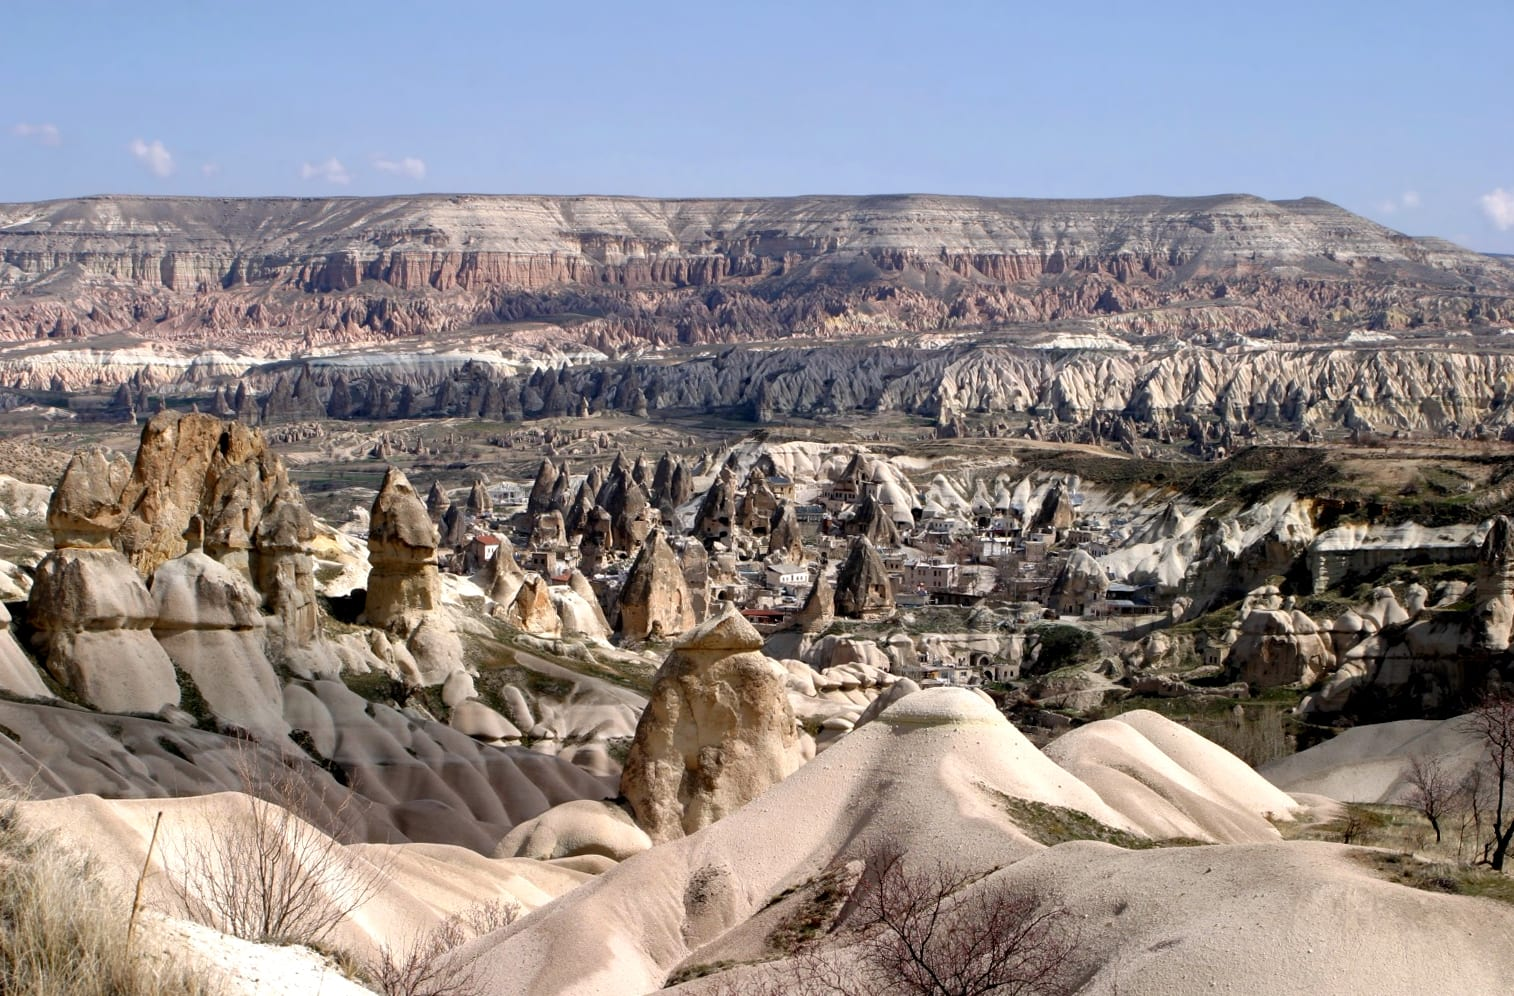 City of Cappadocia where Derinkuyu is held